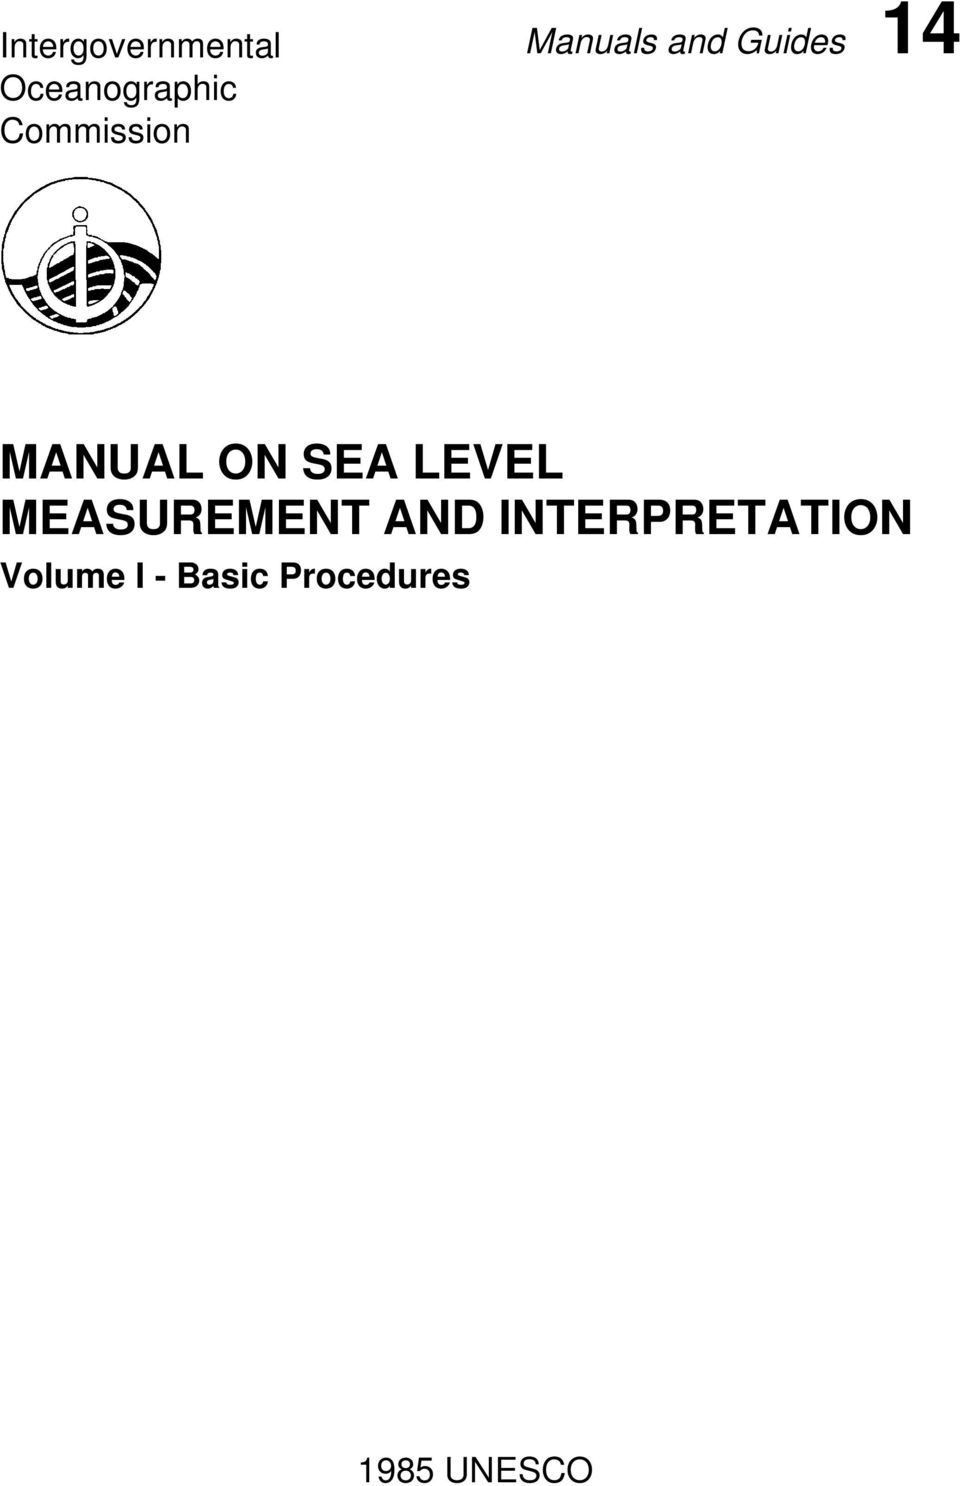 MANUAL ON SEA LEVEL MEASUREMENT AND